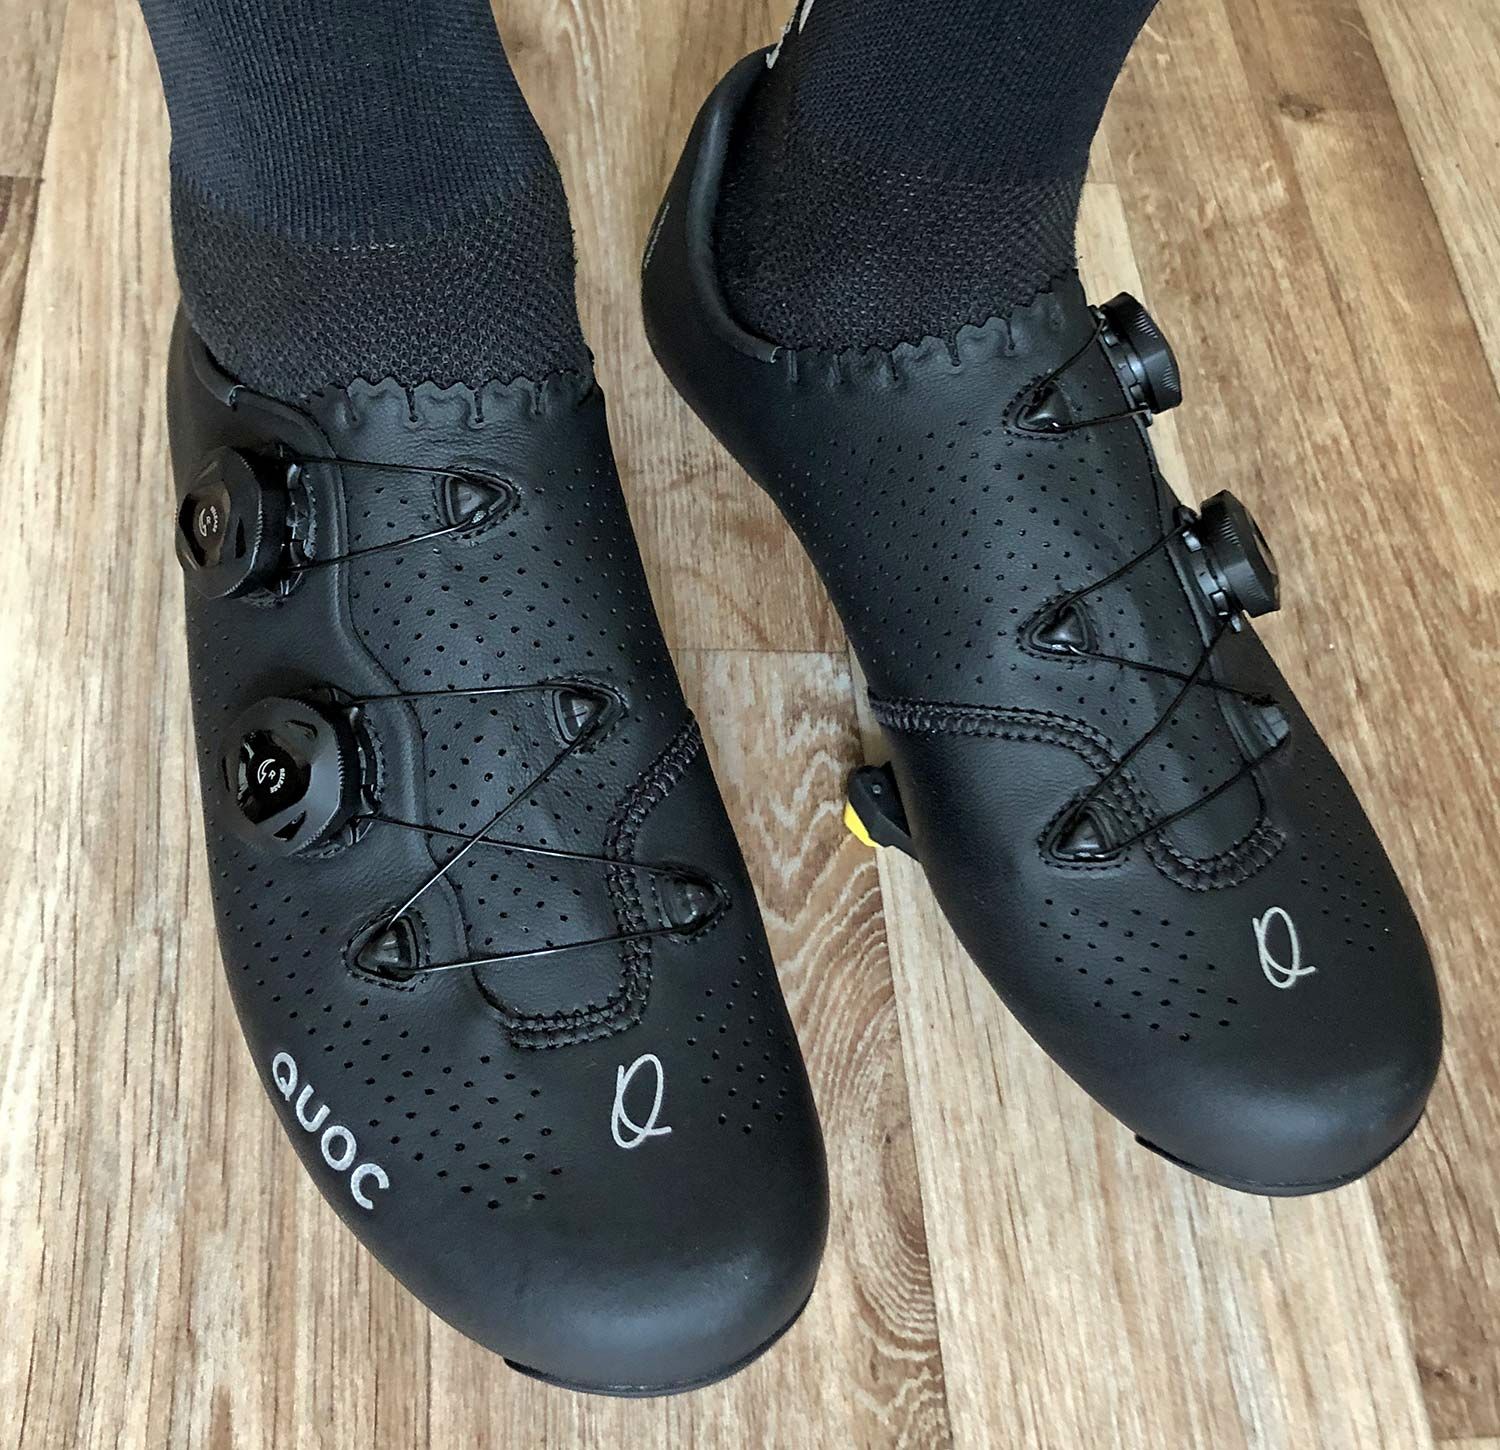 Quoc Mono II lightweight carbon-soled road cycling shoes Review,fit